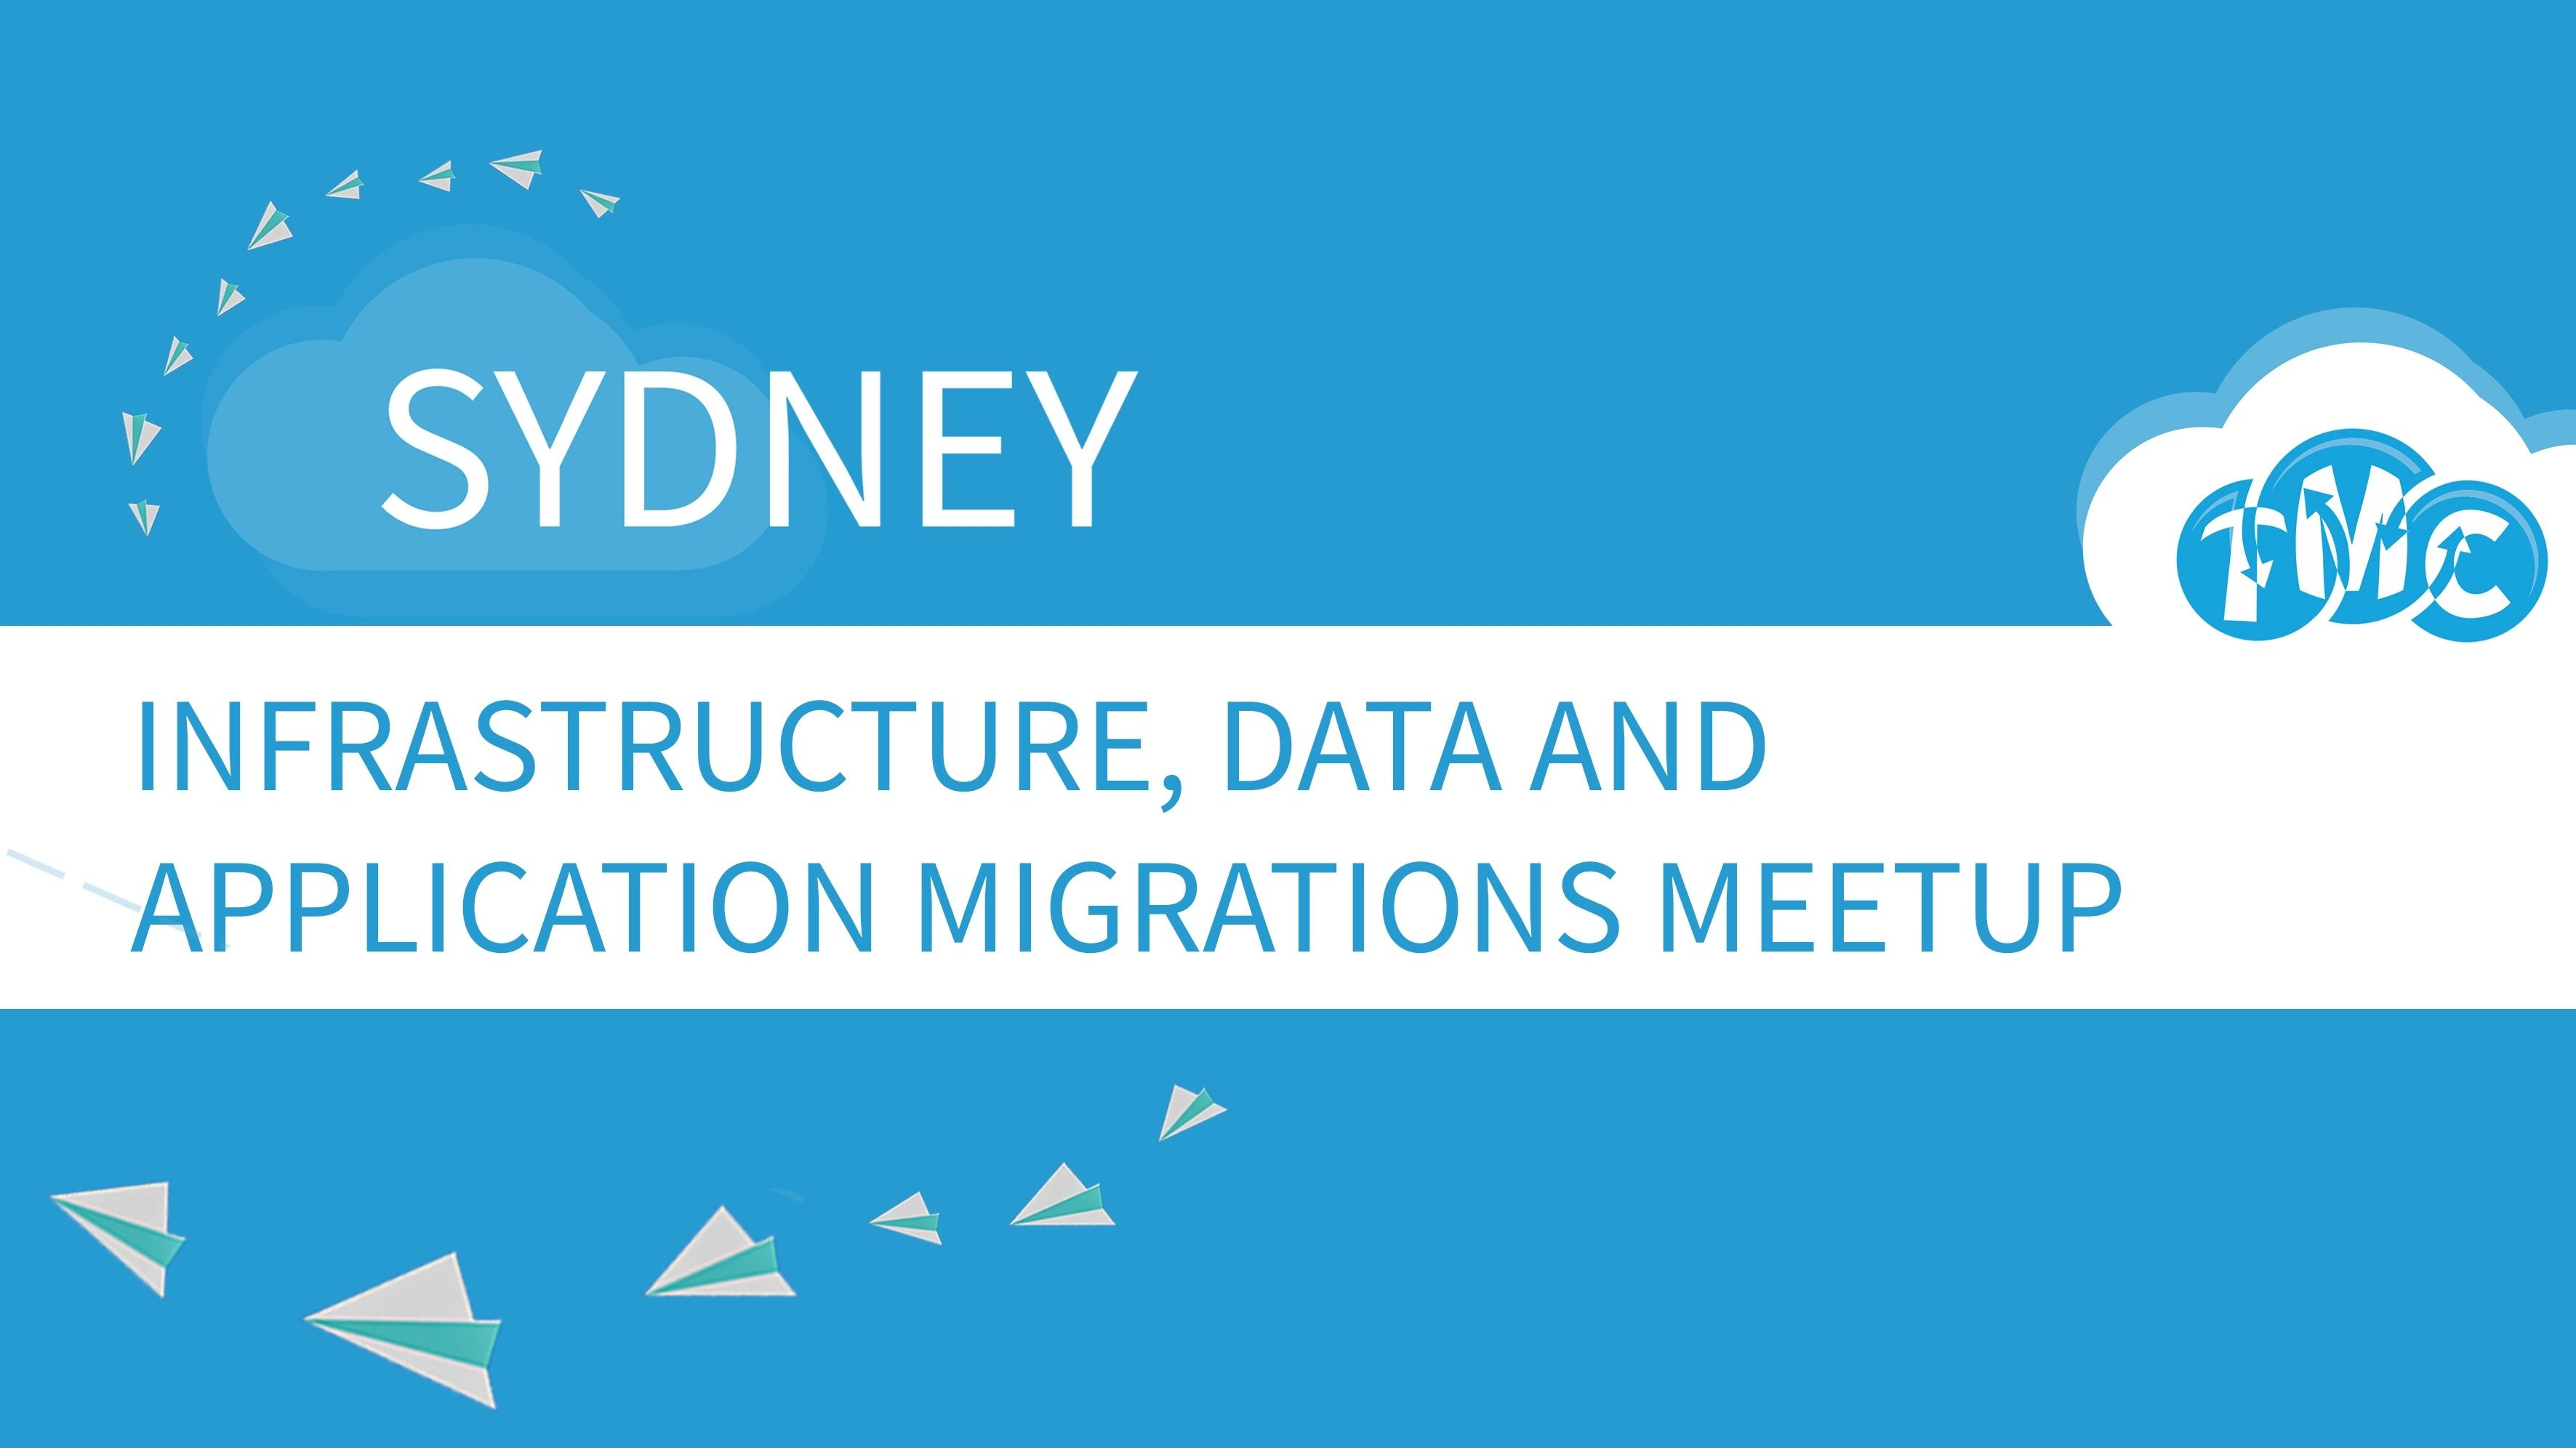 Sydney Infrastructure, Data and Application Migration Meetup